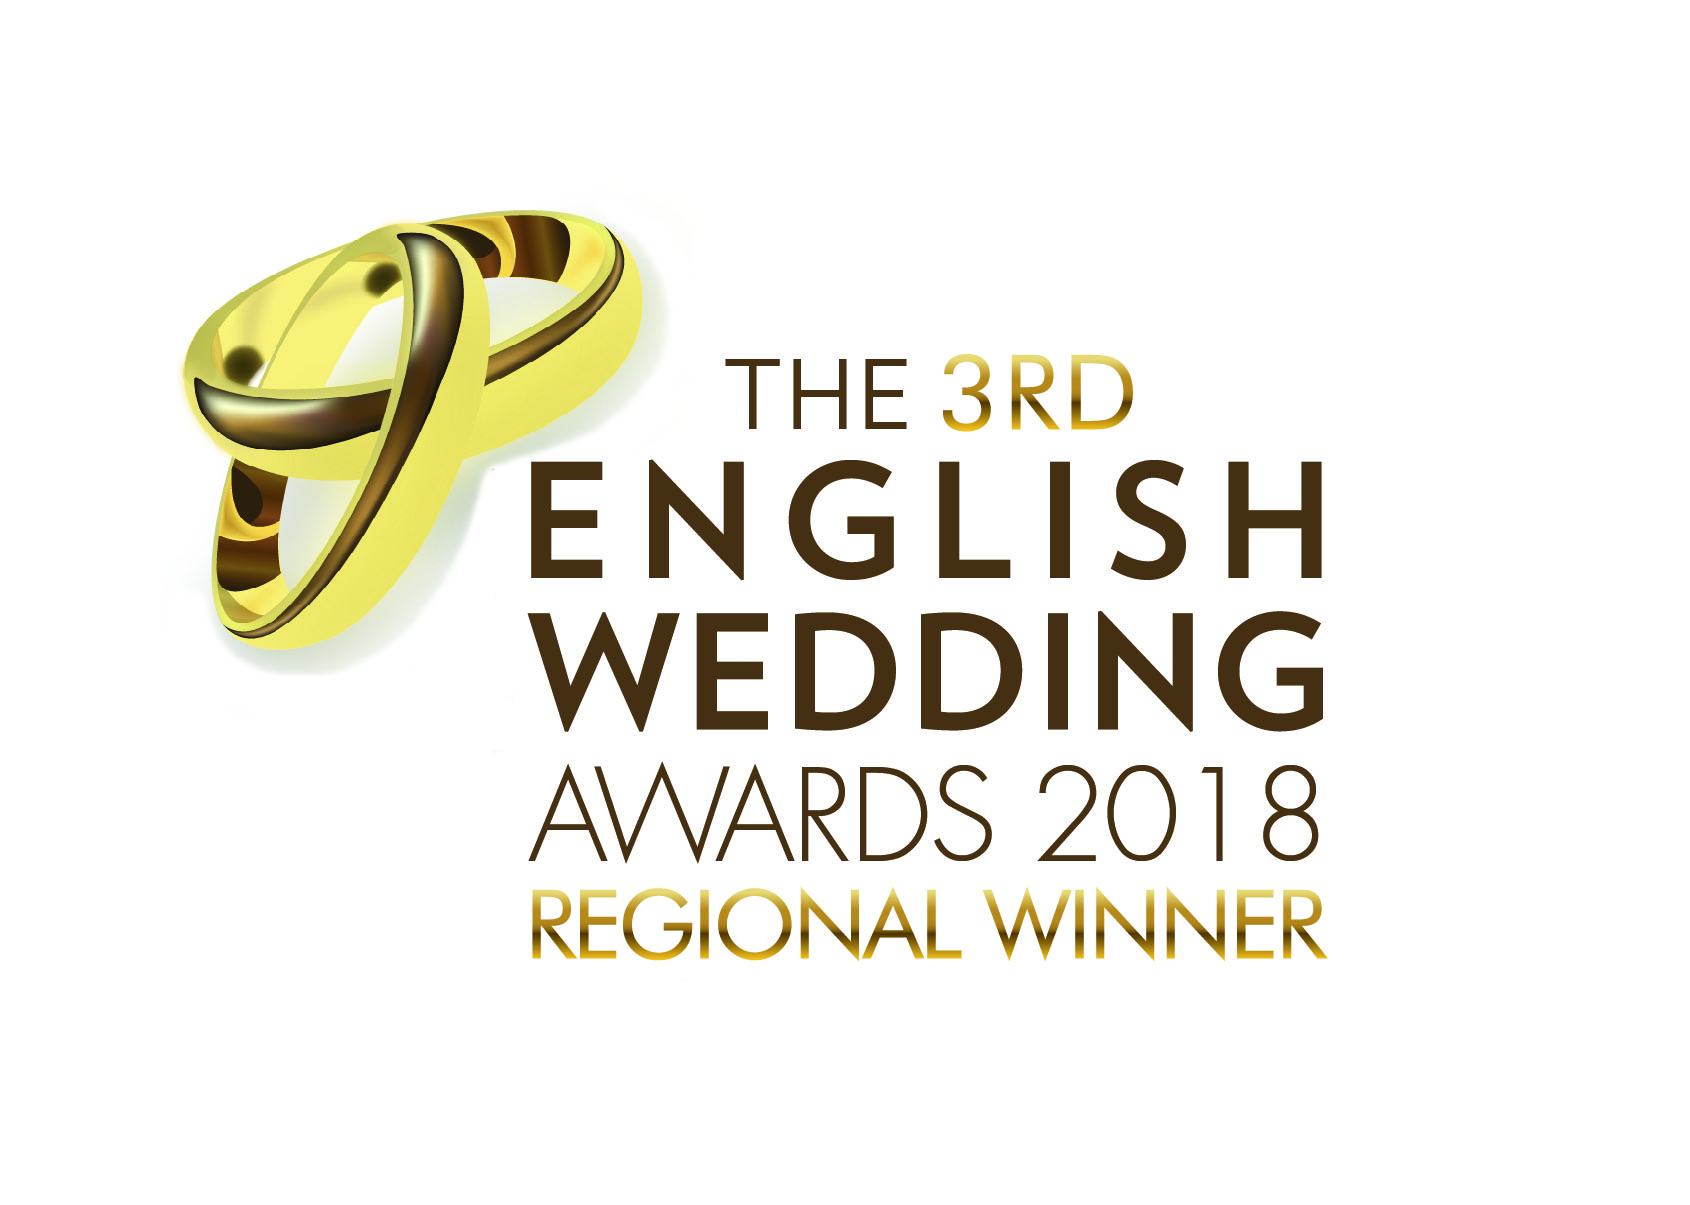 Regional-Winner-Logo-_-English-Wedding-Awards-2018-01.jpg